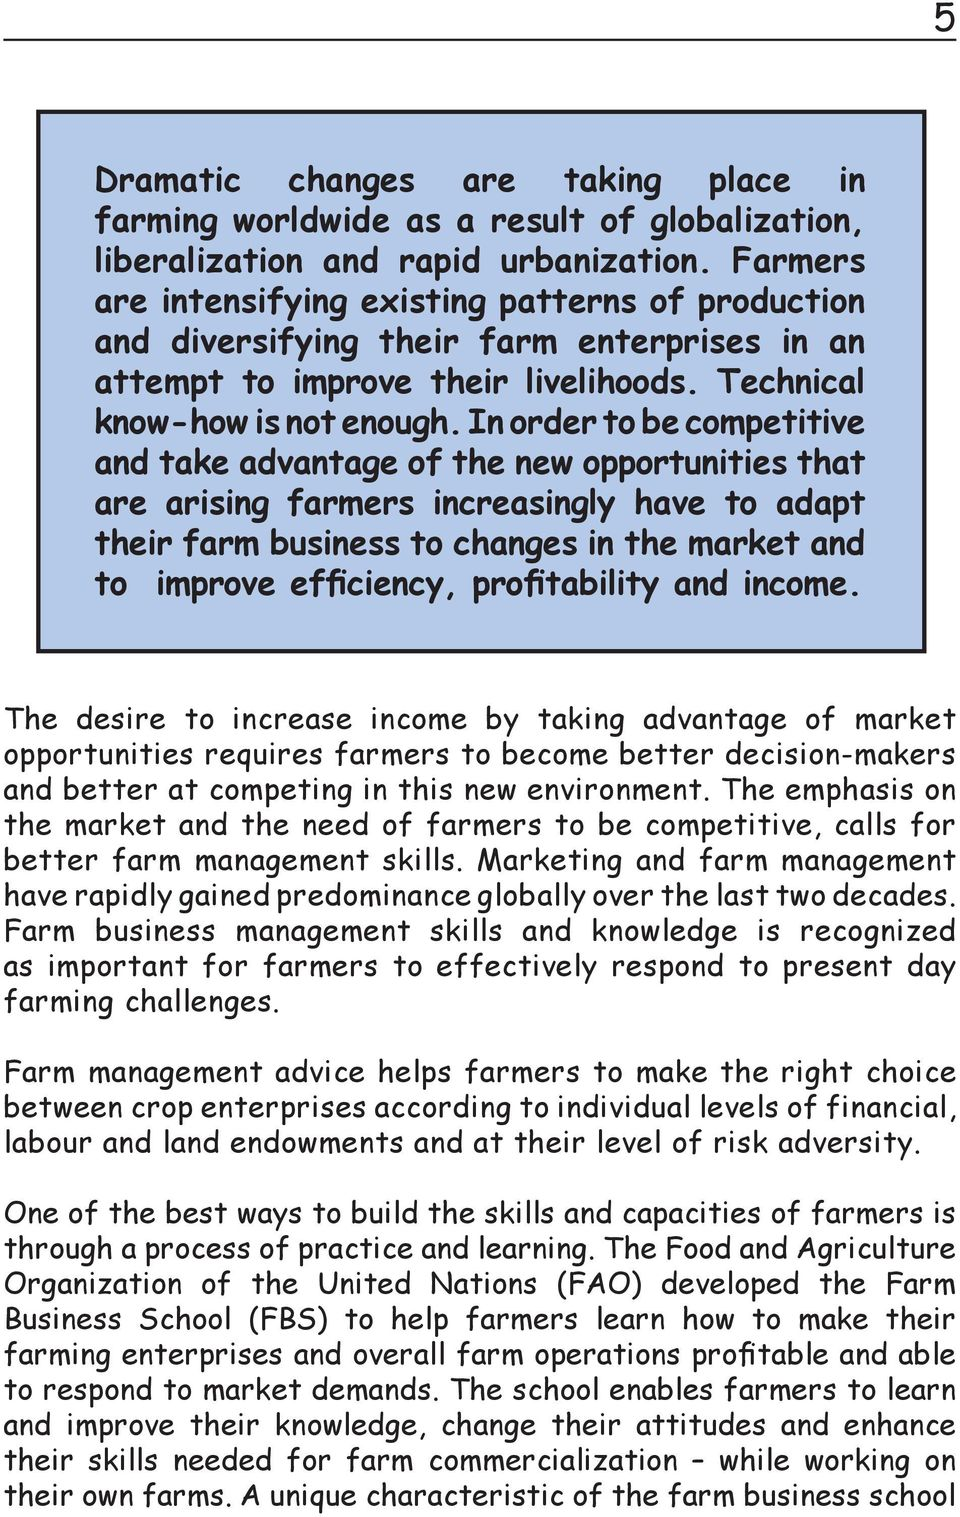 In order to be competitive and take advantage of the new opportunities that are arising farmers increasingly have to adapt their farm business to changes in the market and to improve efficiency,